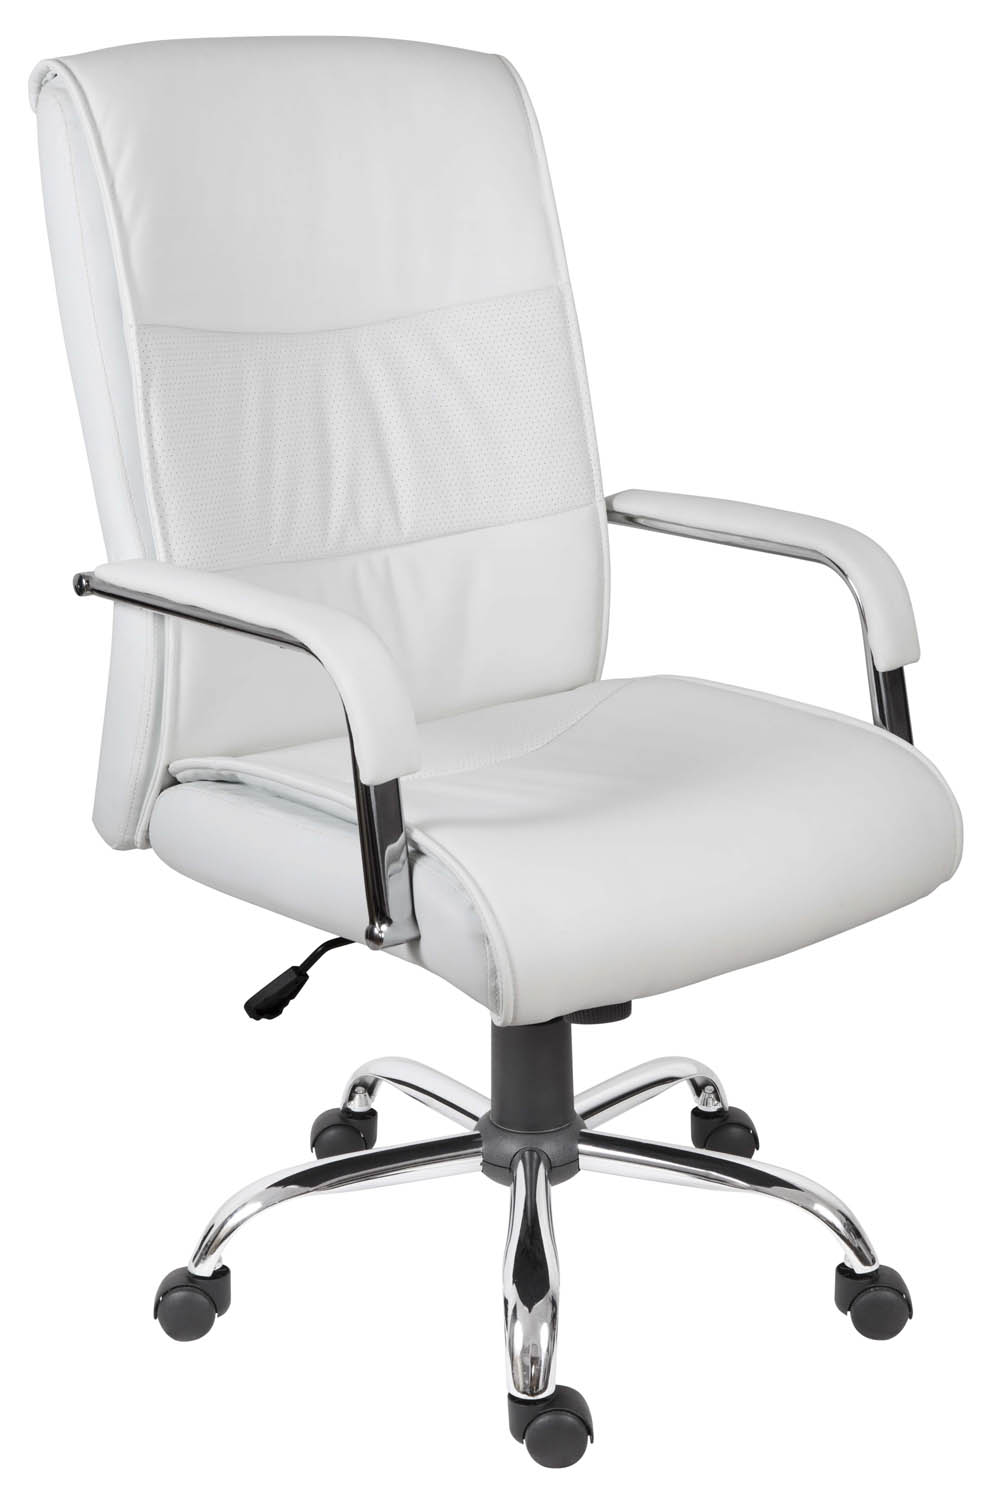 office chair white leather. White Office Chair Leather T